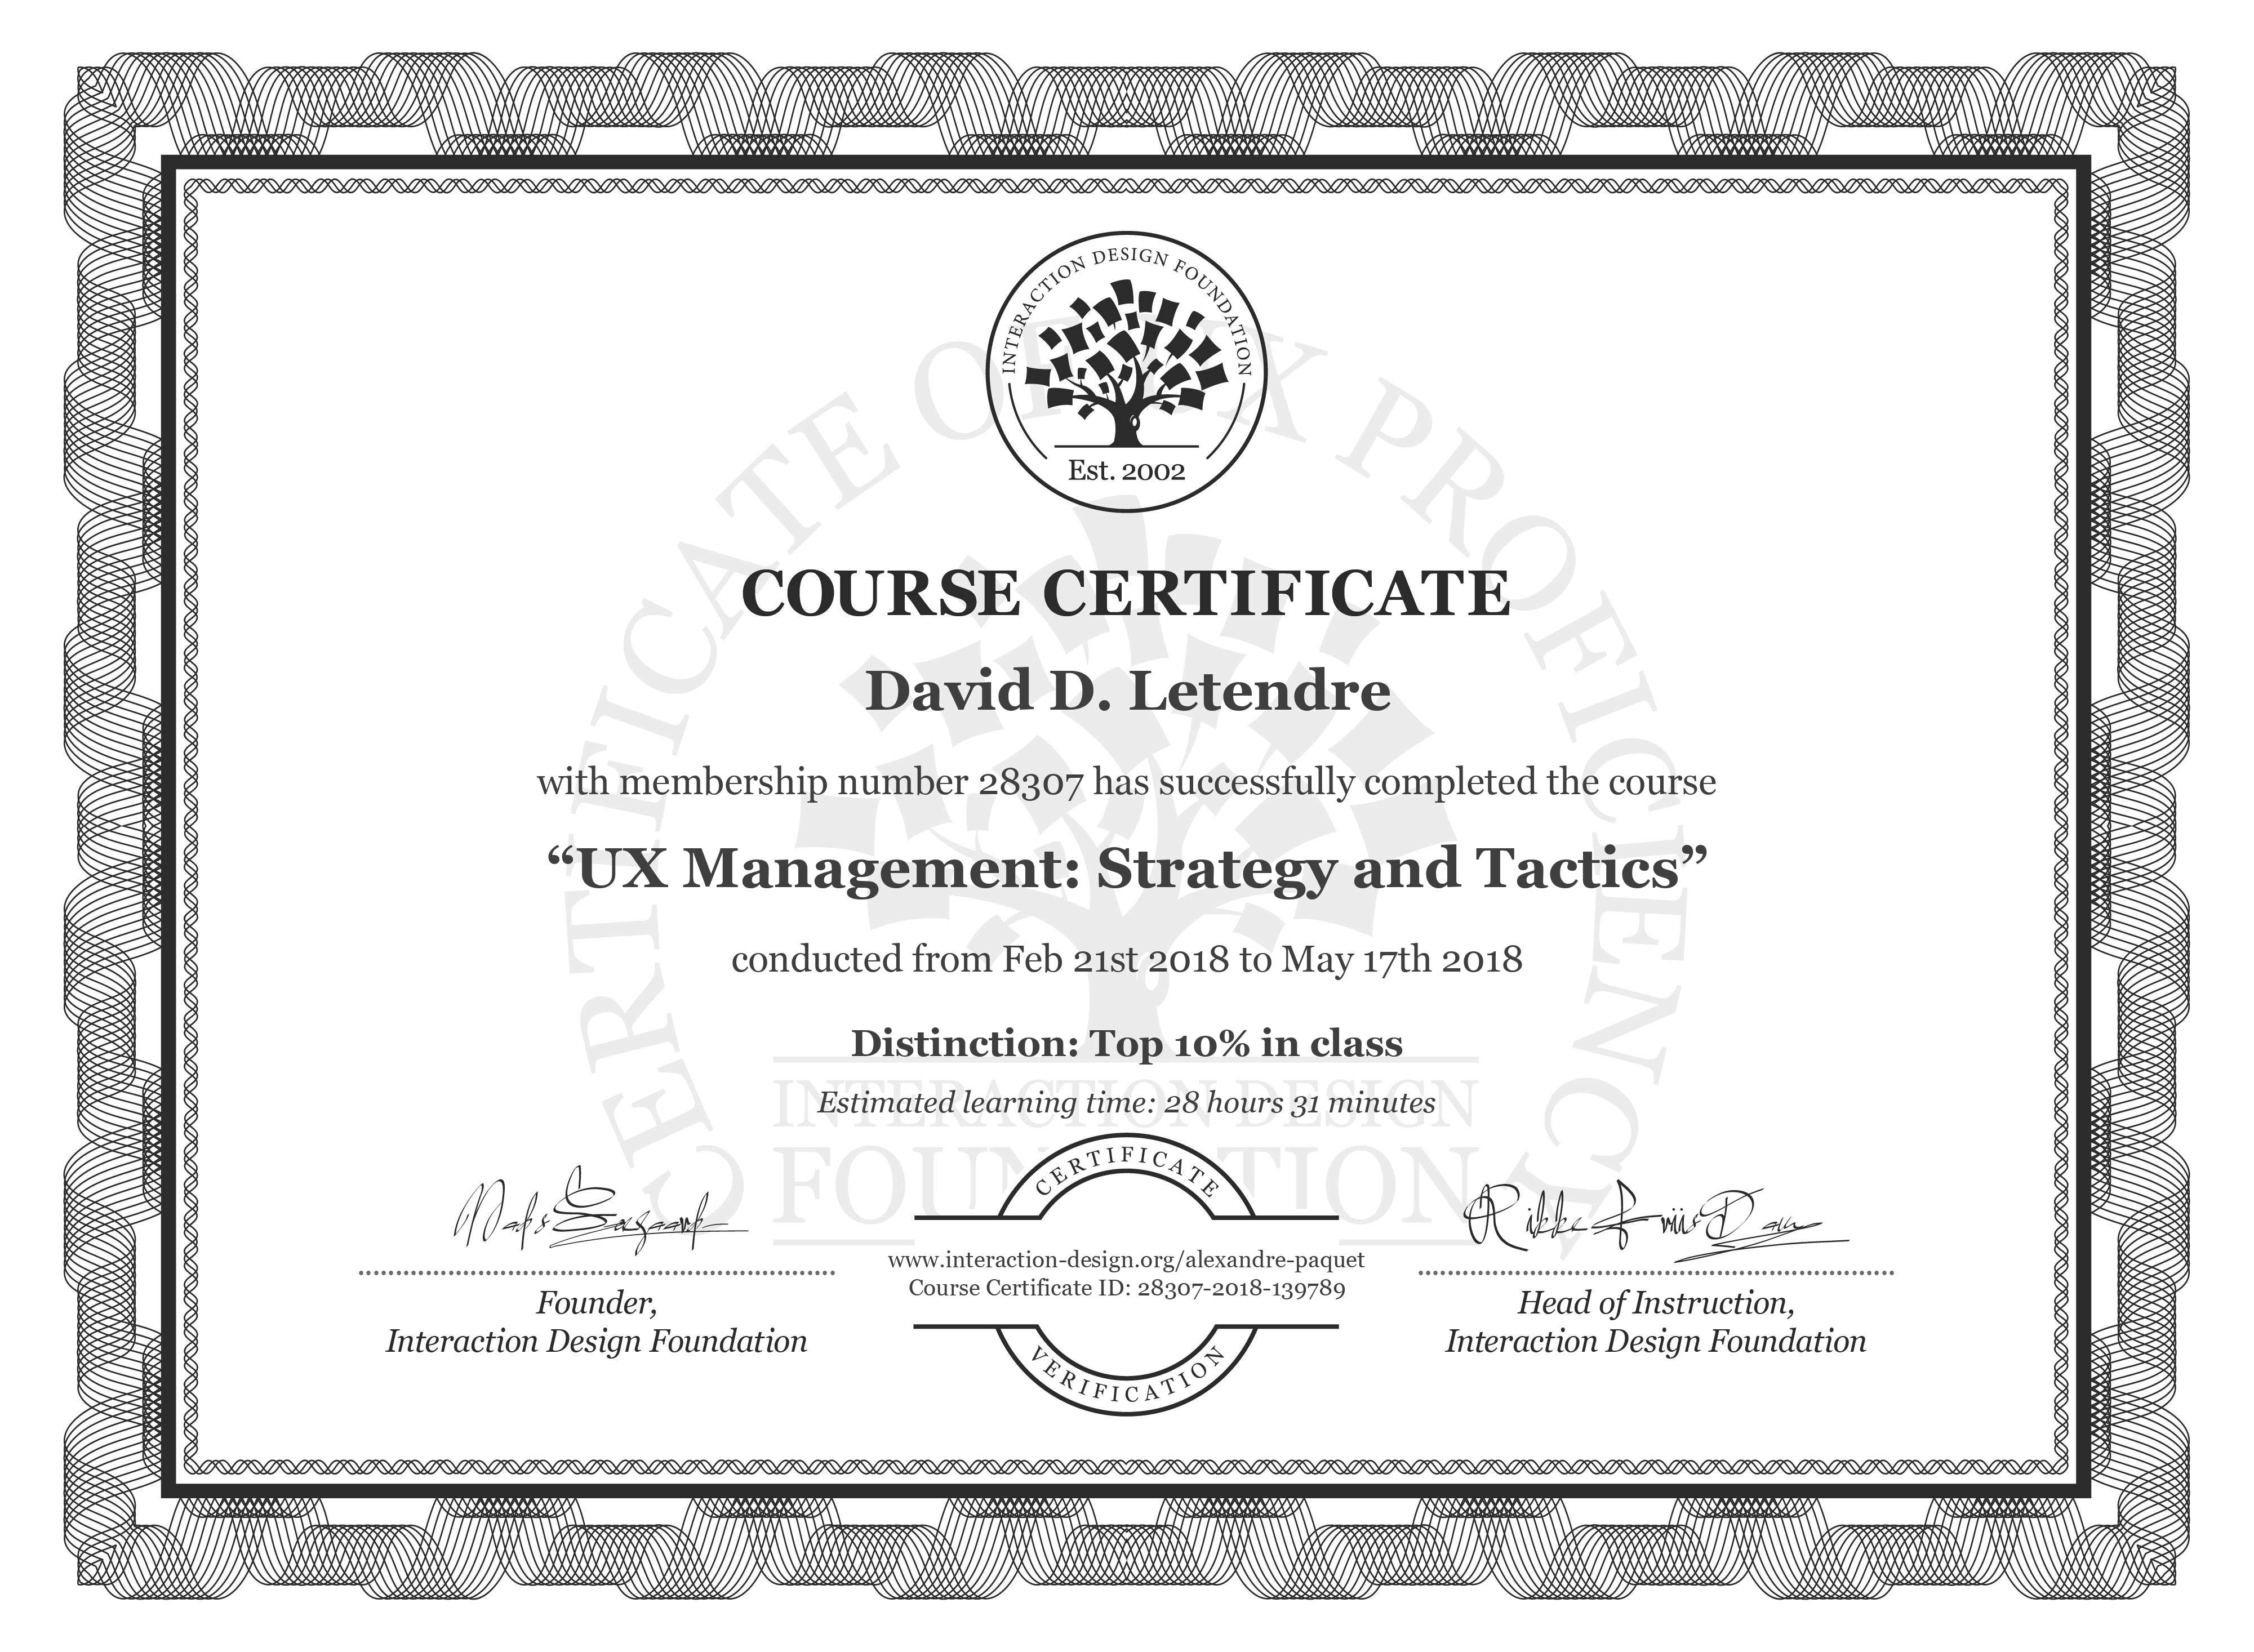 David D. Letendre's Course Certificate: UX Management: Strategy and Tactics